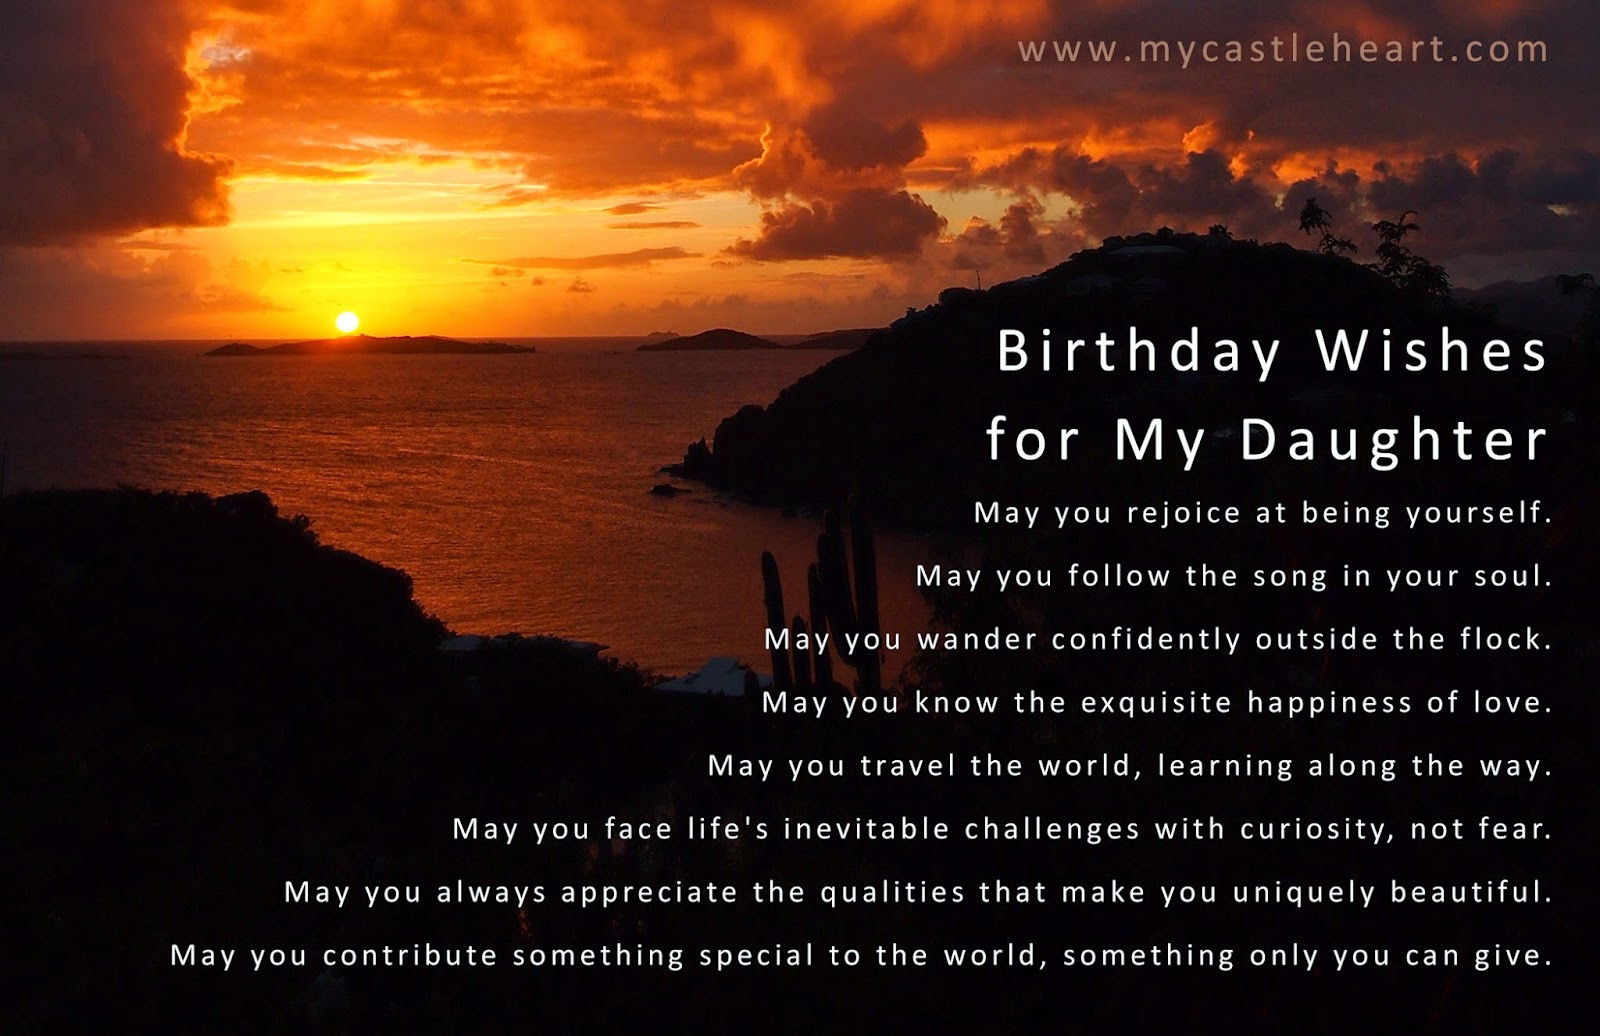 Best ideas about Birthday Quote For Daughter . Save or Pin Birthday Wishes For Daughter Birthday Wishes Now.